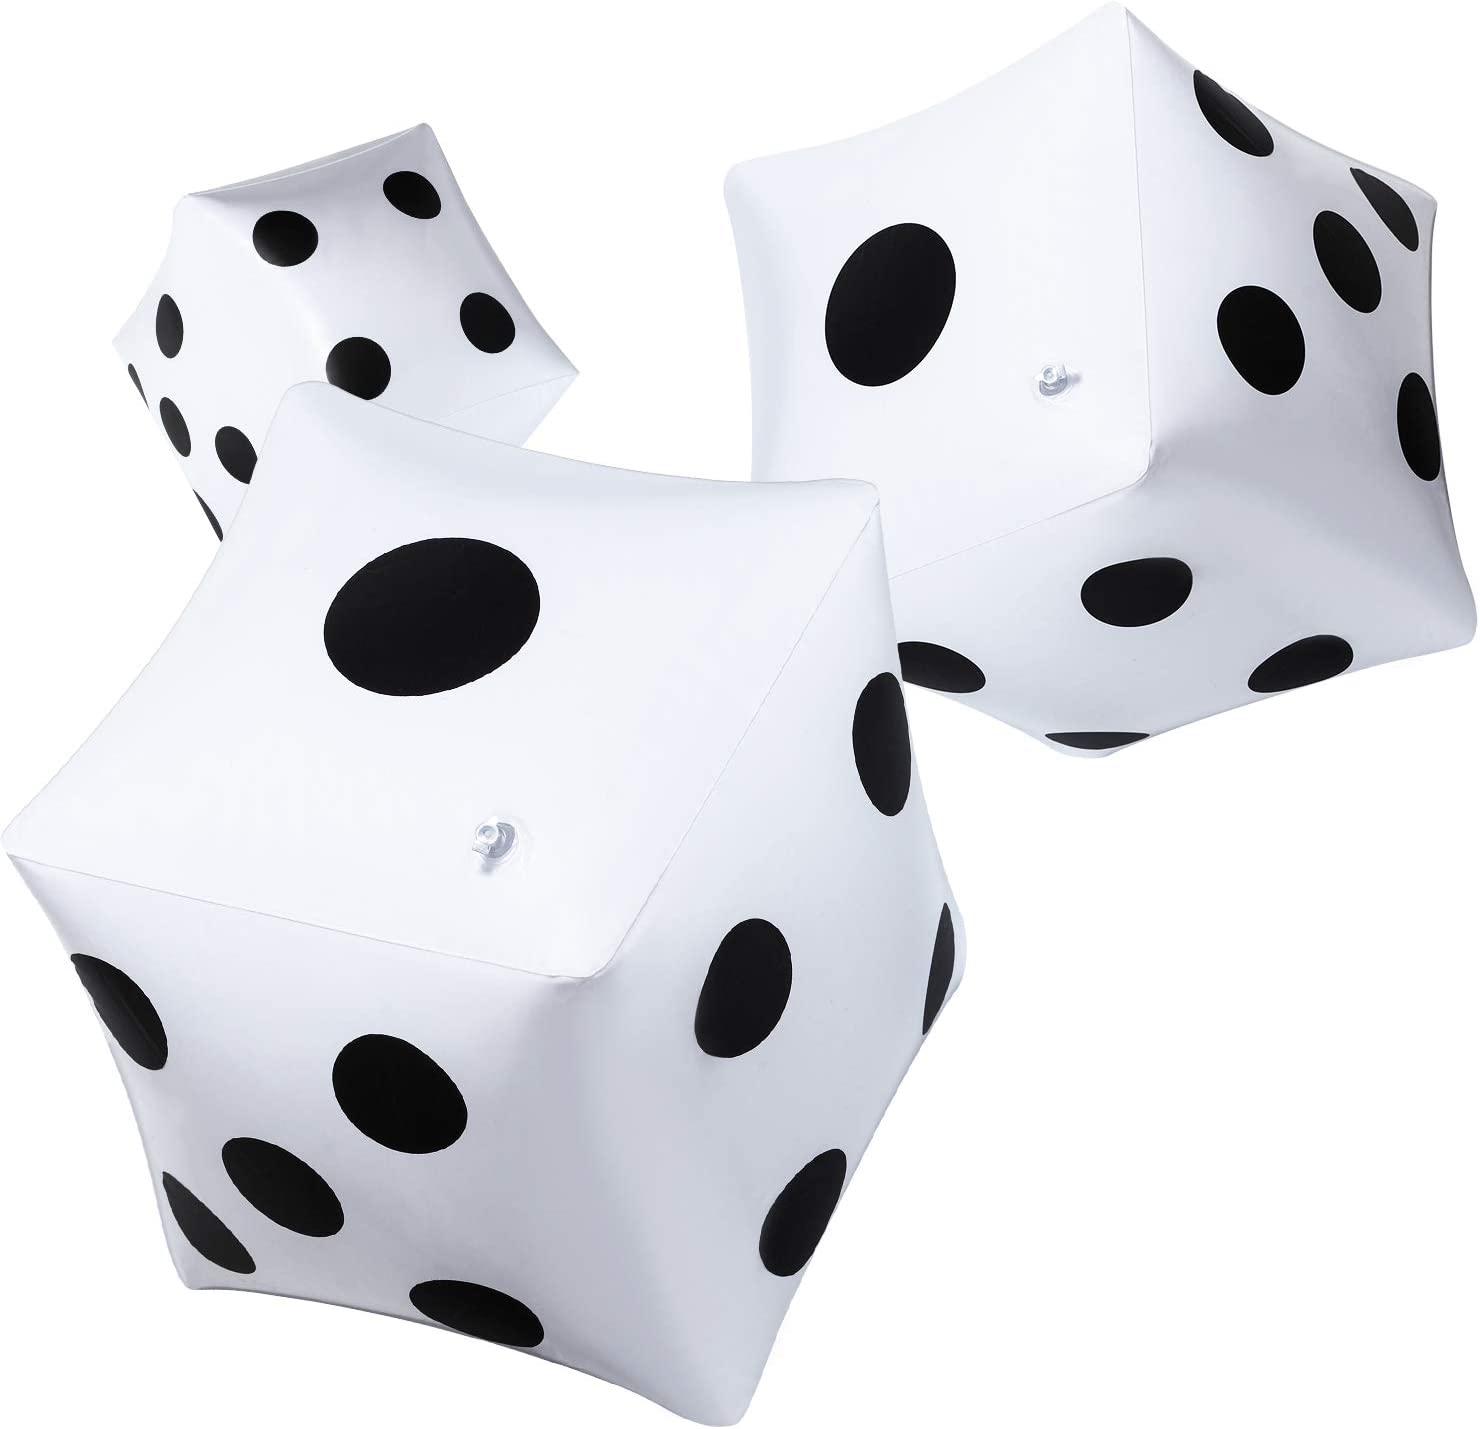 Blulu 3 Pack Giant Inflatable Dice 12 Inch Jumbo Dice White Jumbo Large Inflatable Dice for Game Pool Toy Party Favour (White, 3 Pack)